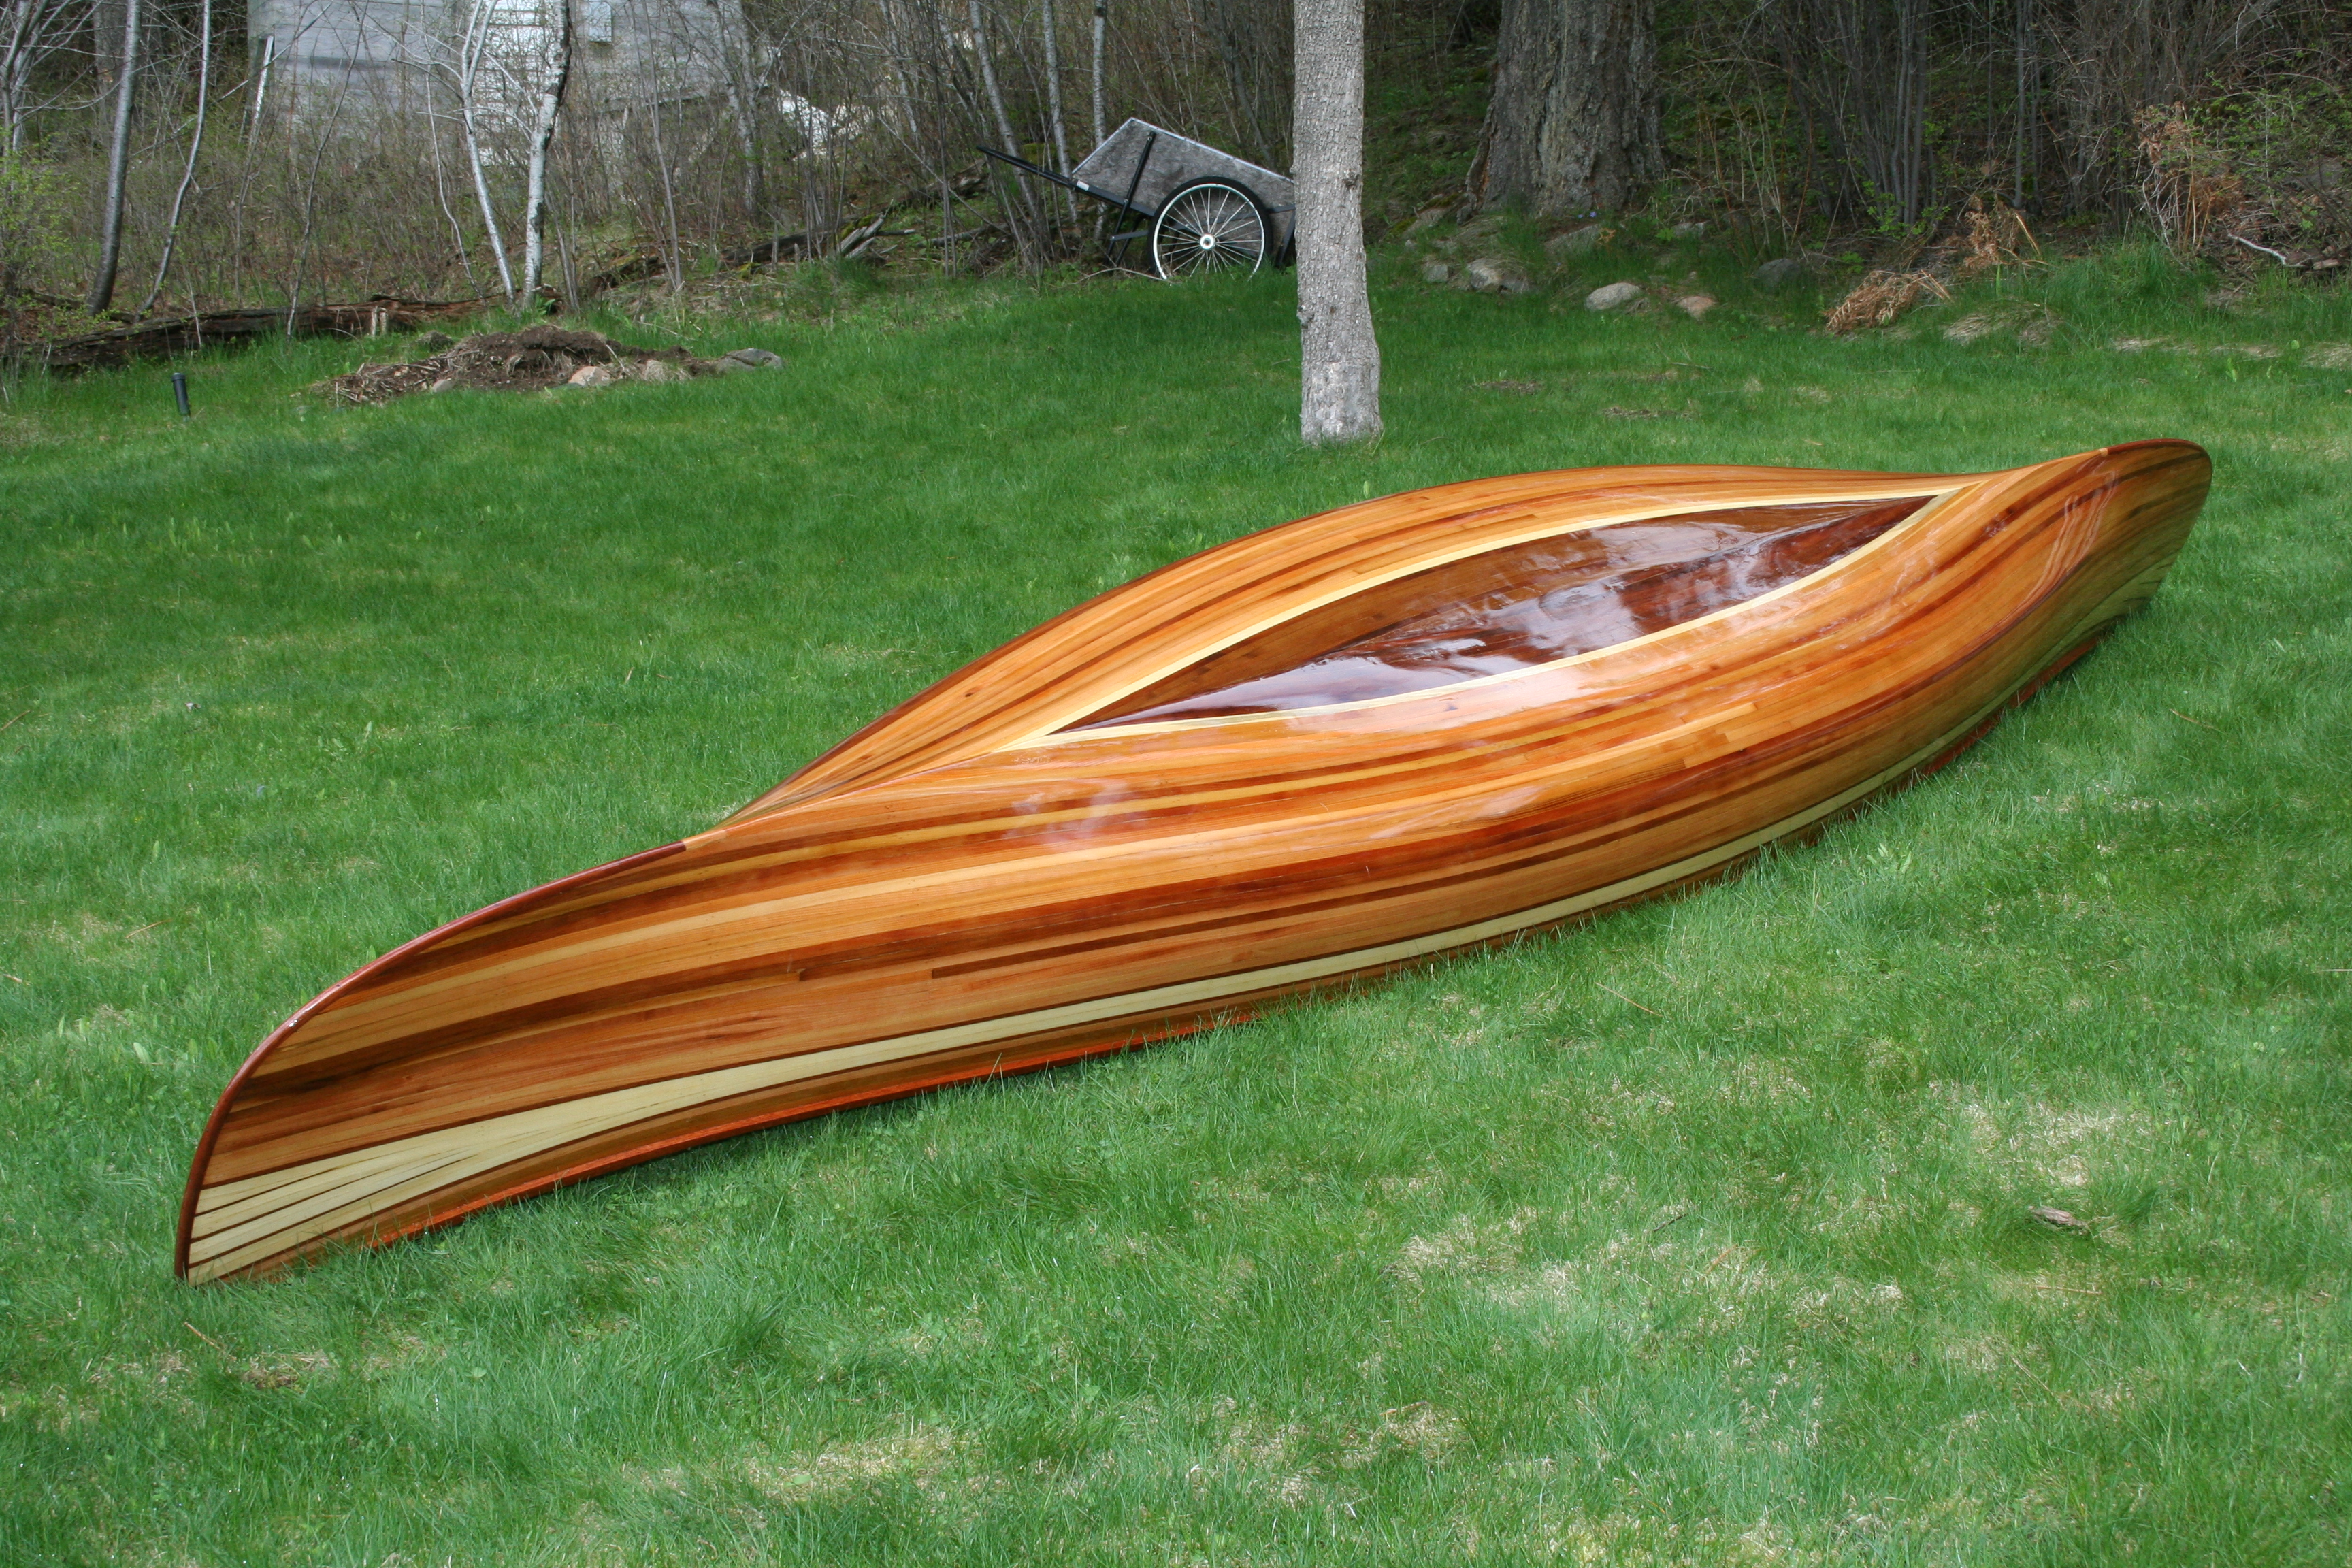 Woodworking Woodstrip Kayak Plans PDF Free Download